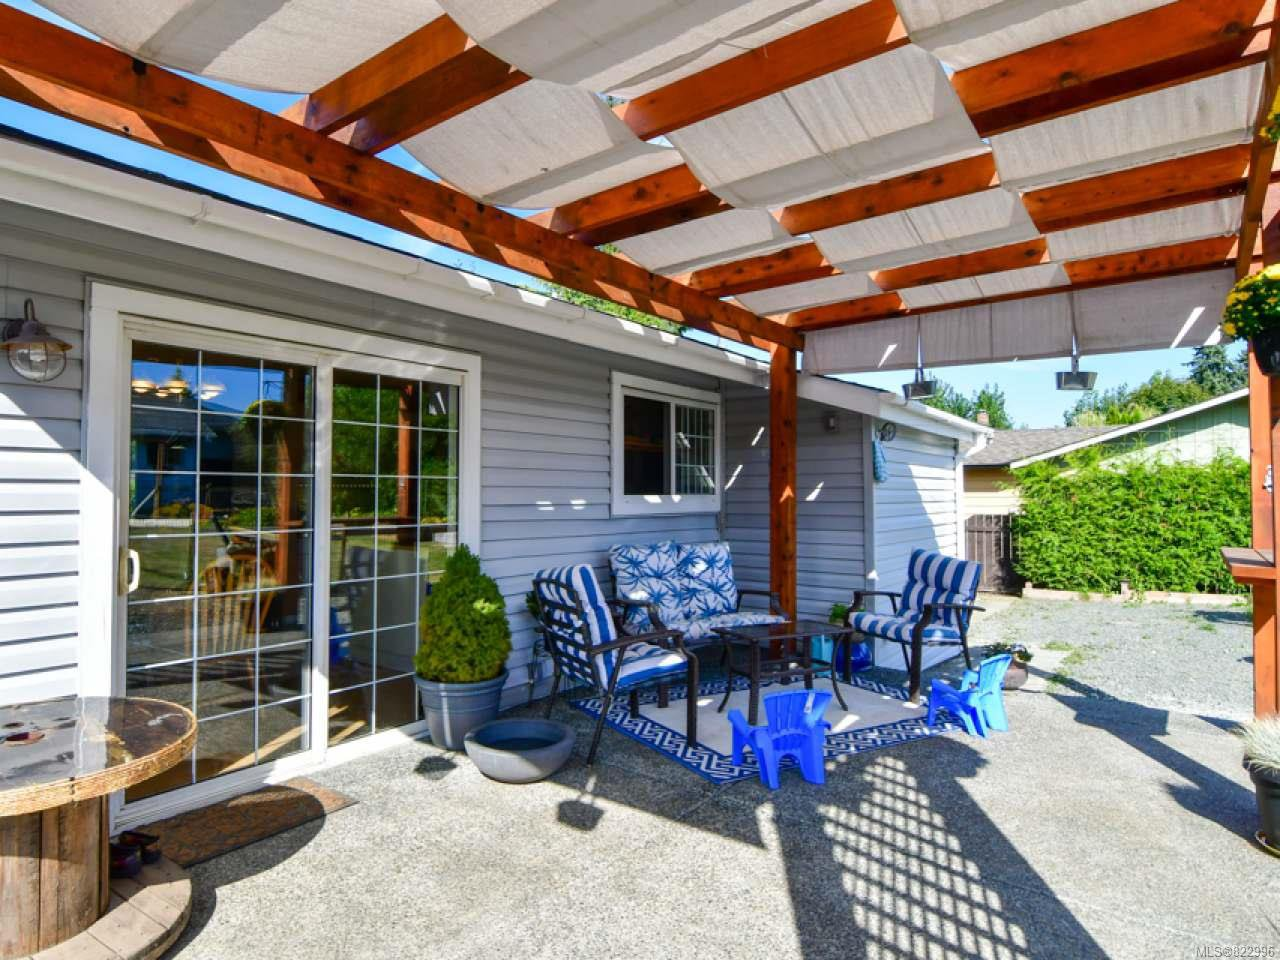 Photo 35: Photos: 691 Holm Rd in CAMPBELL RIVER: CR Willow Point House for sale (Campbell River)  : MLS®# 822996